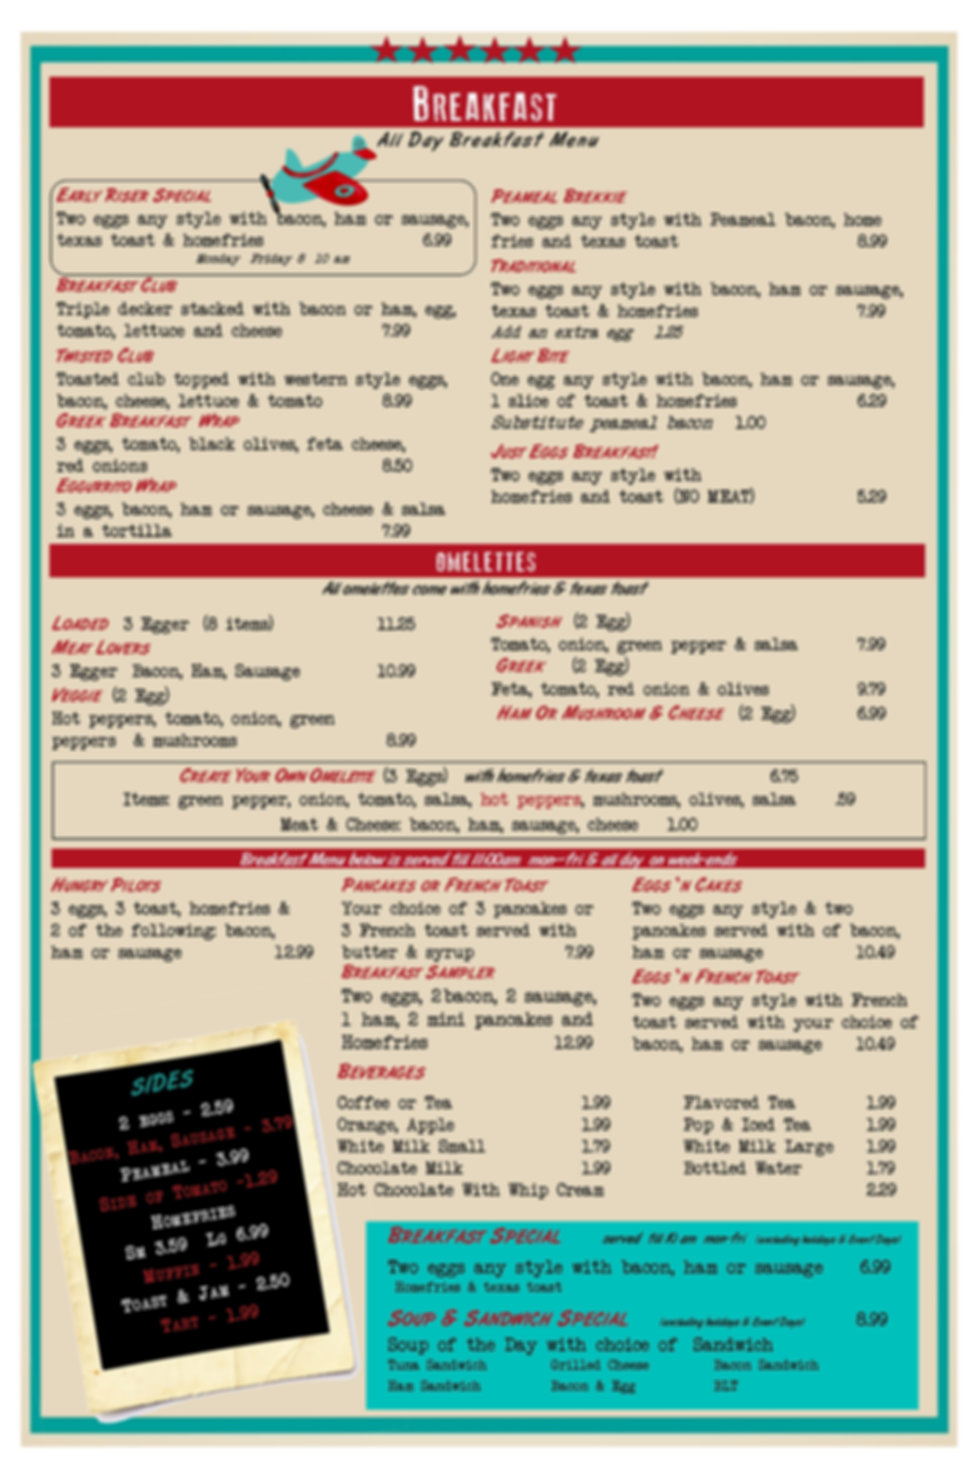 Brantford Breakfast Menu1 2020.jpg